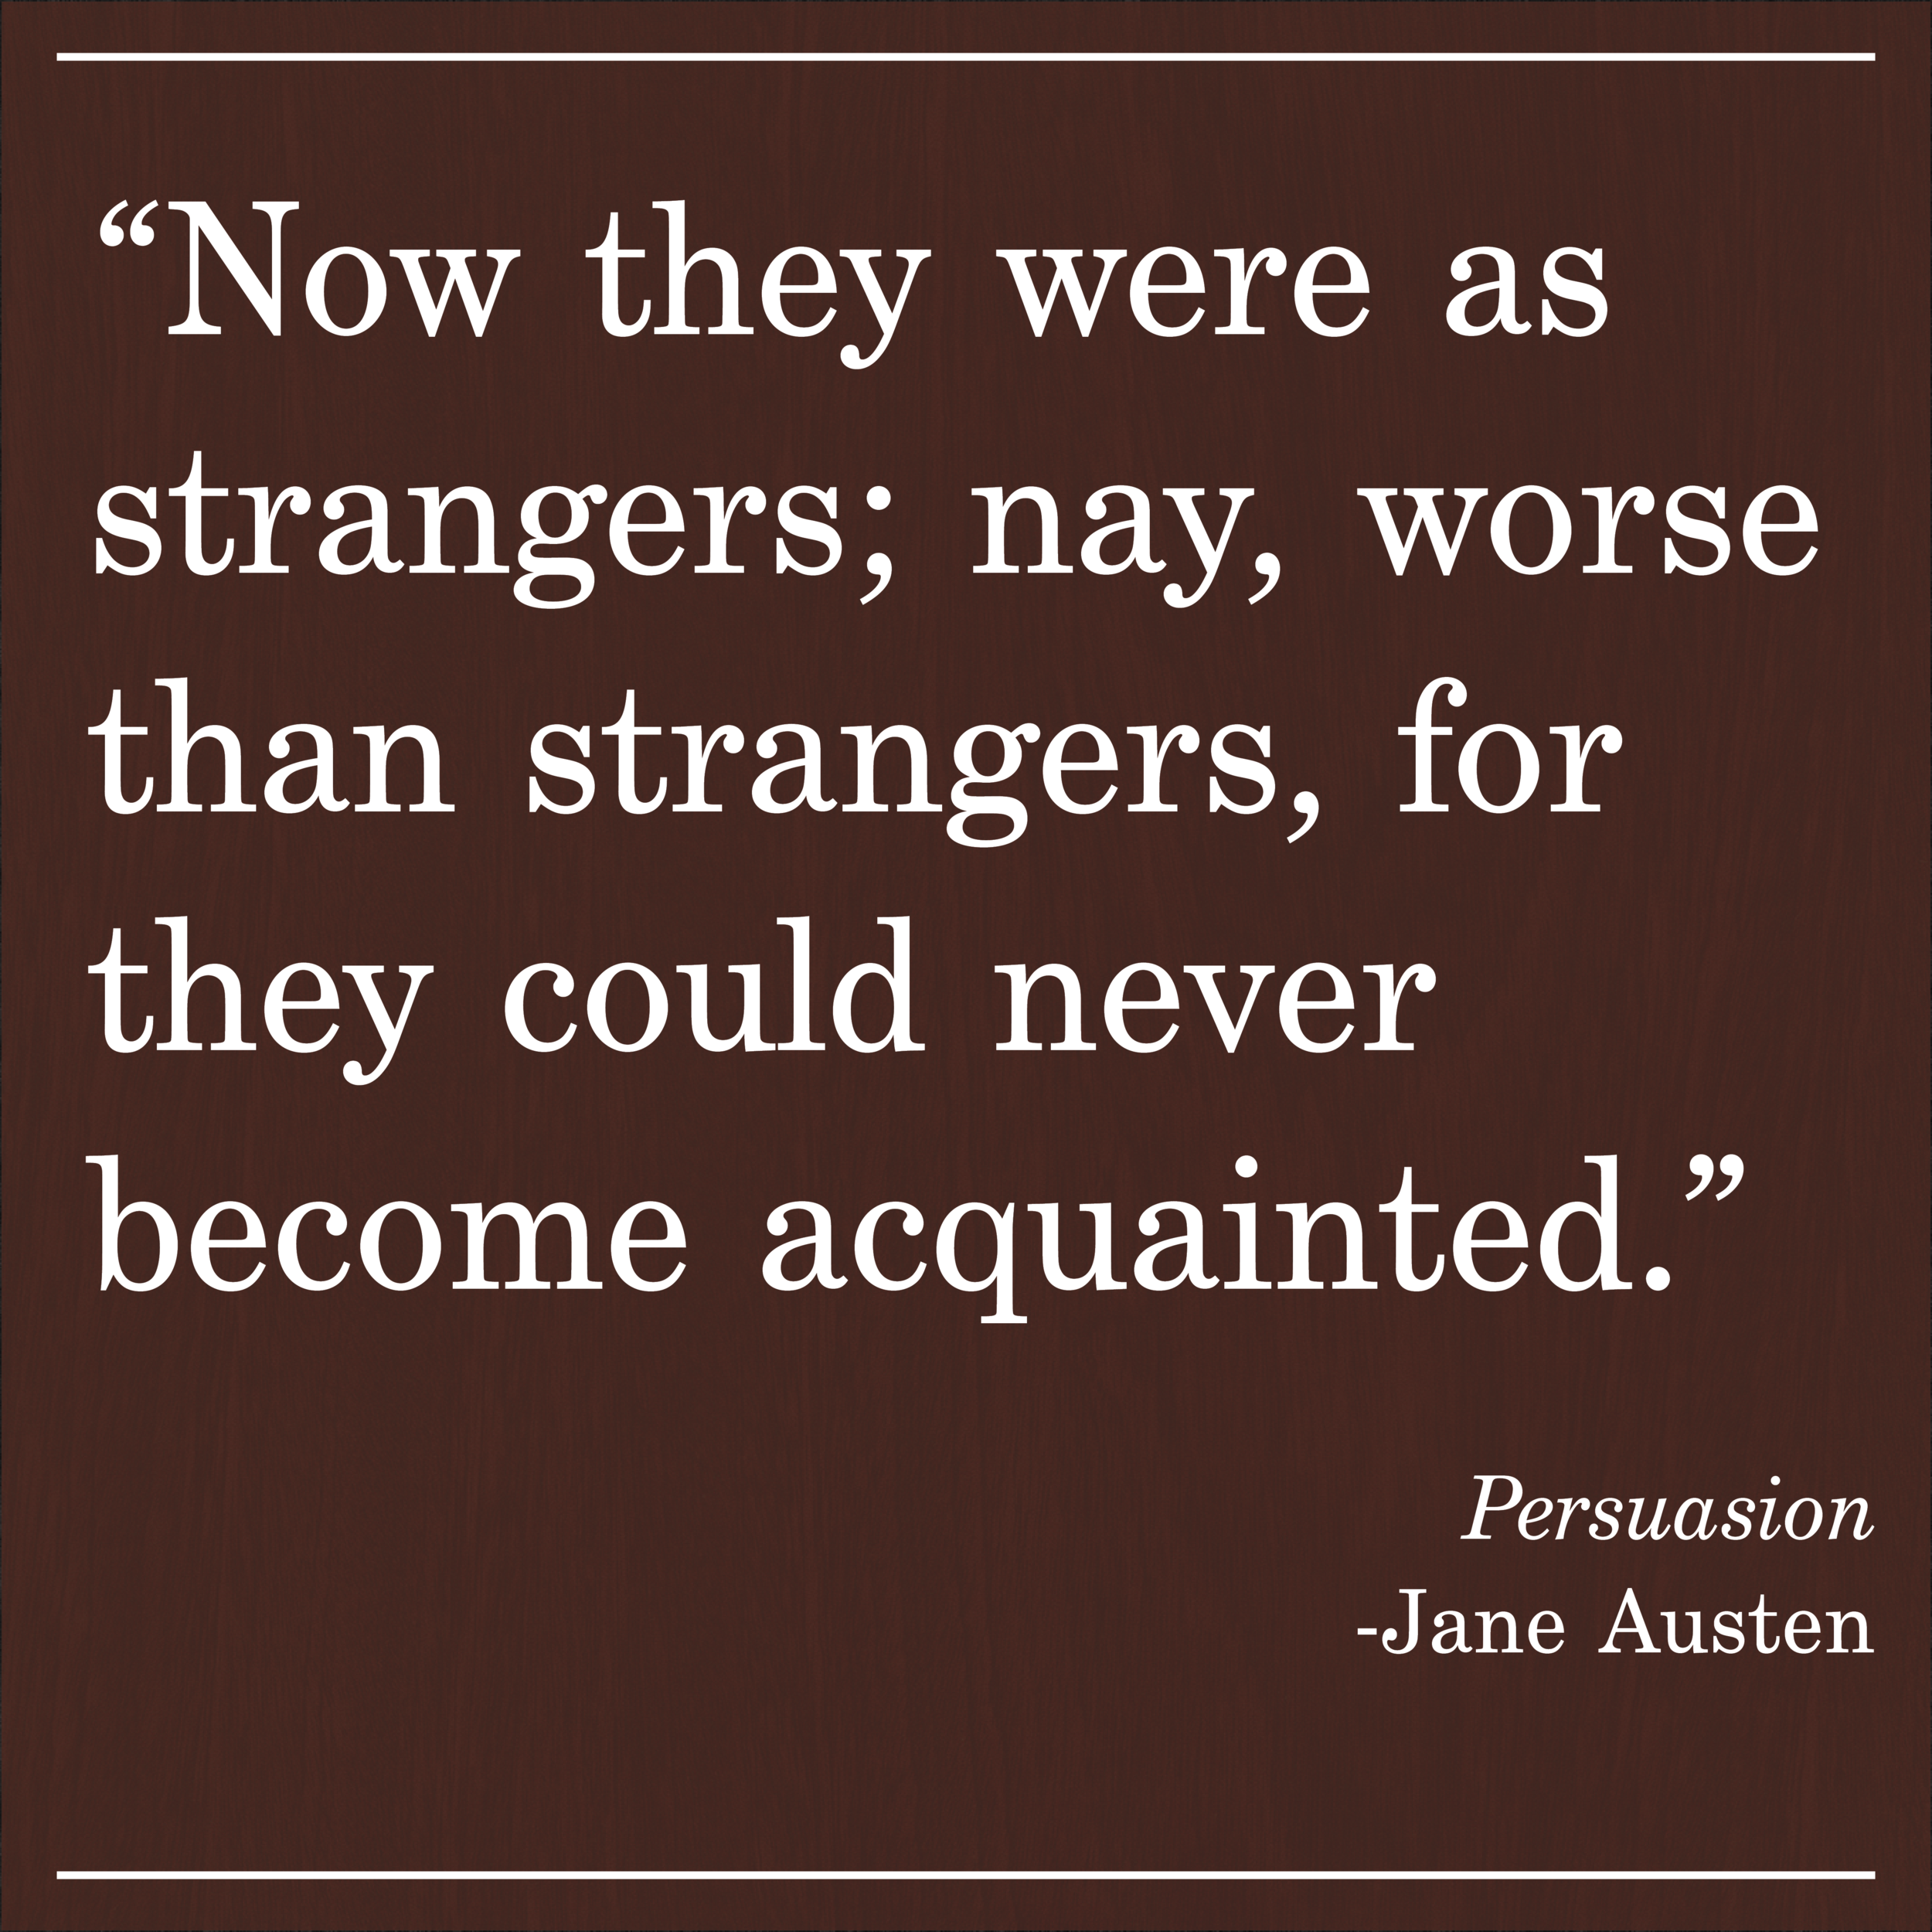 Daily Quote Persuasion by Jane Austen